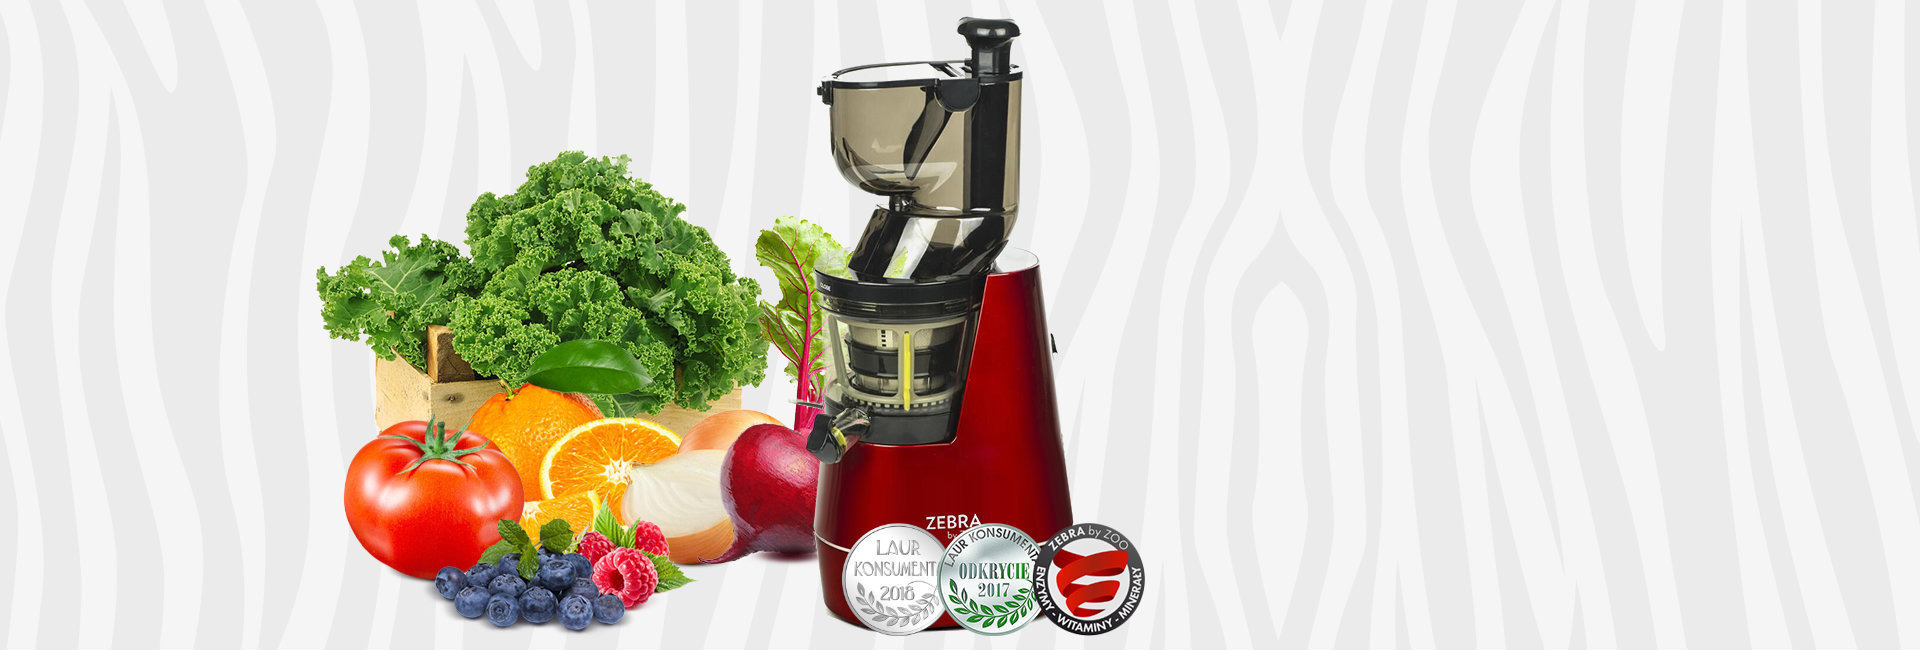 ZEBRA WHOLE SLOW JUICER